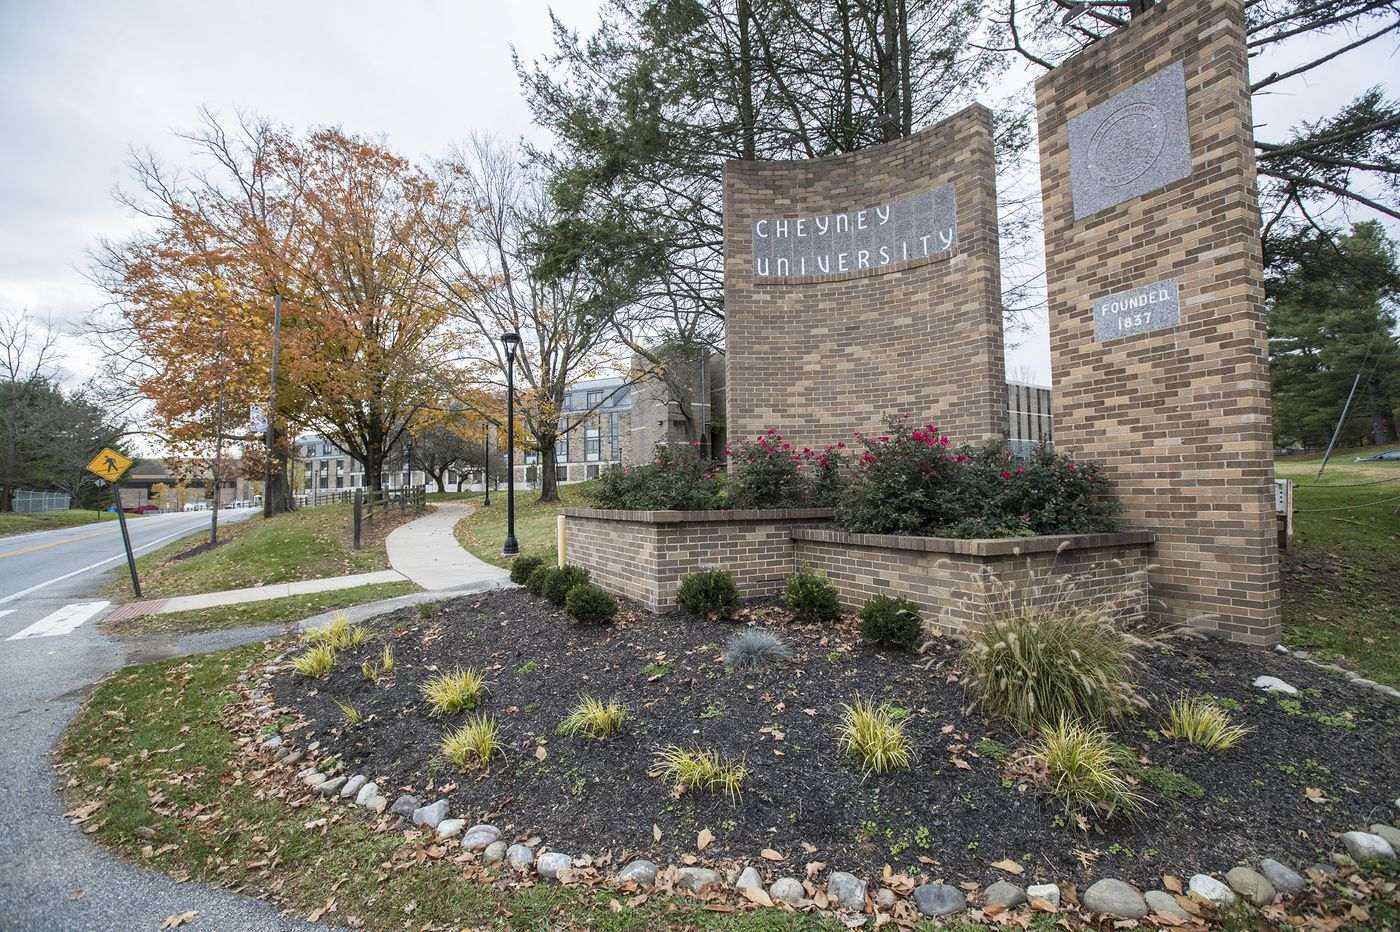 Cheyney University's accreditation extended another year